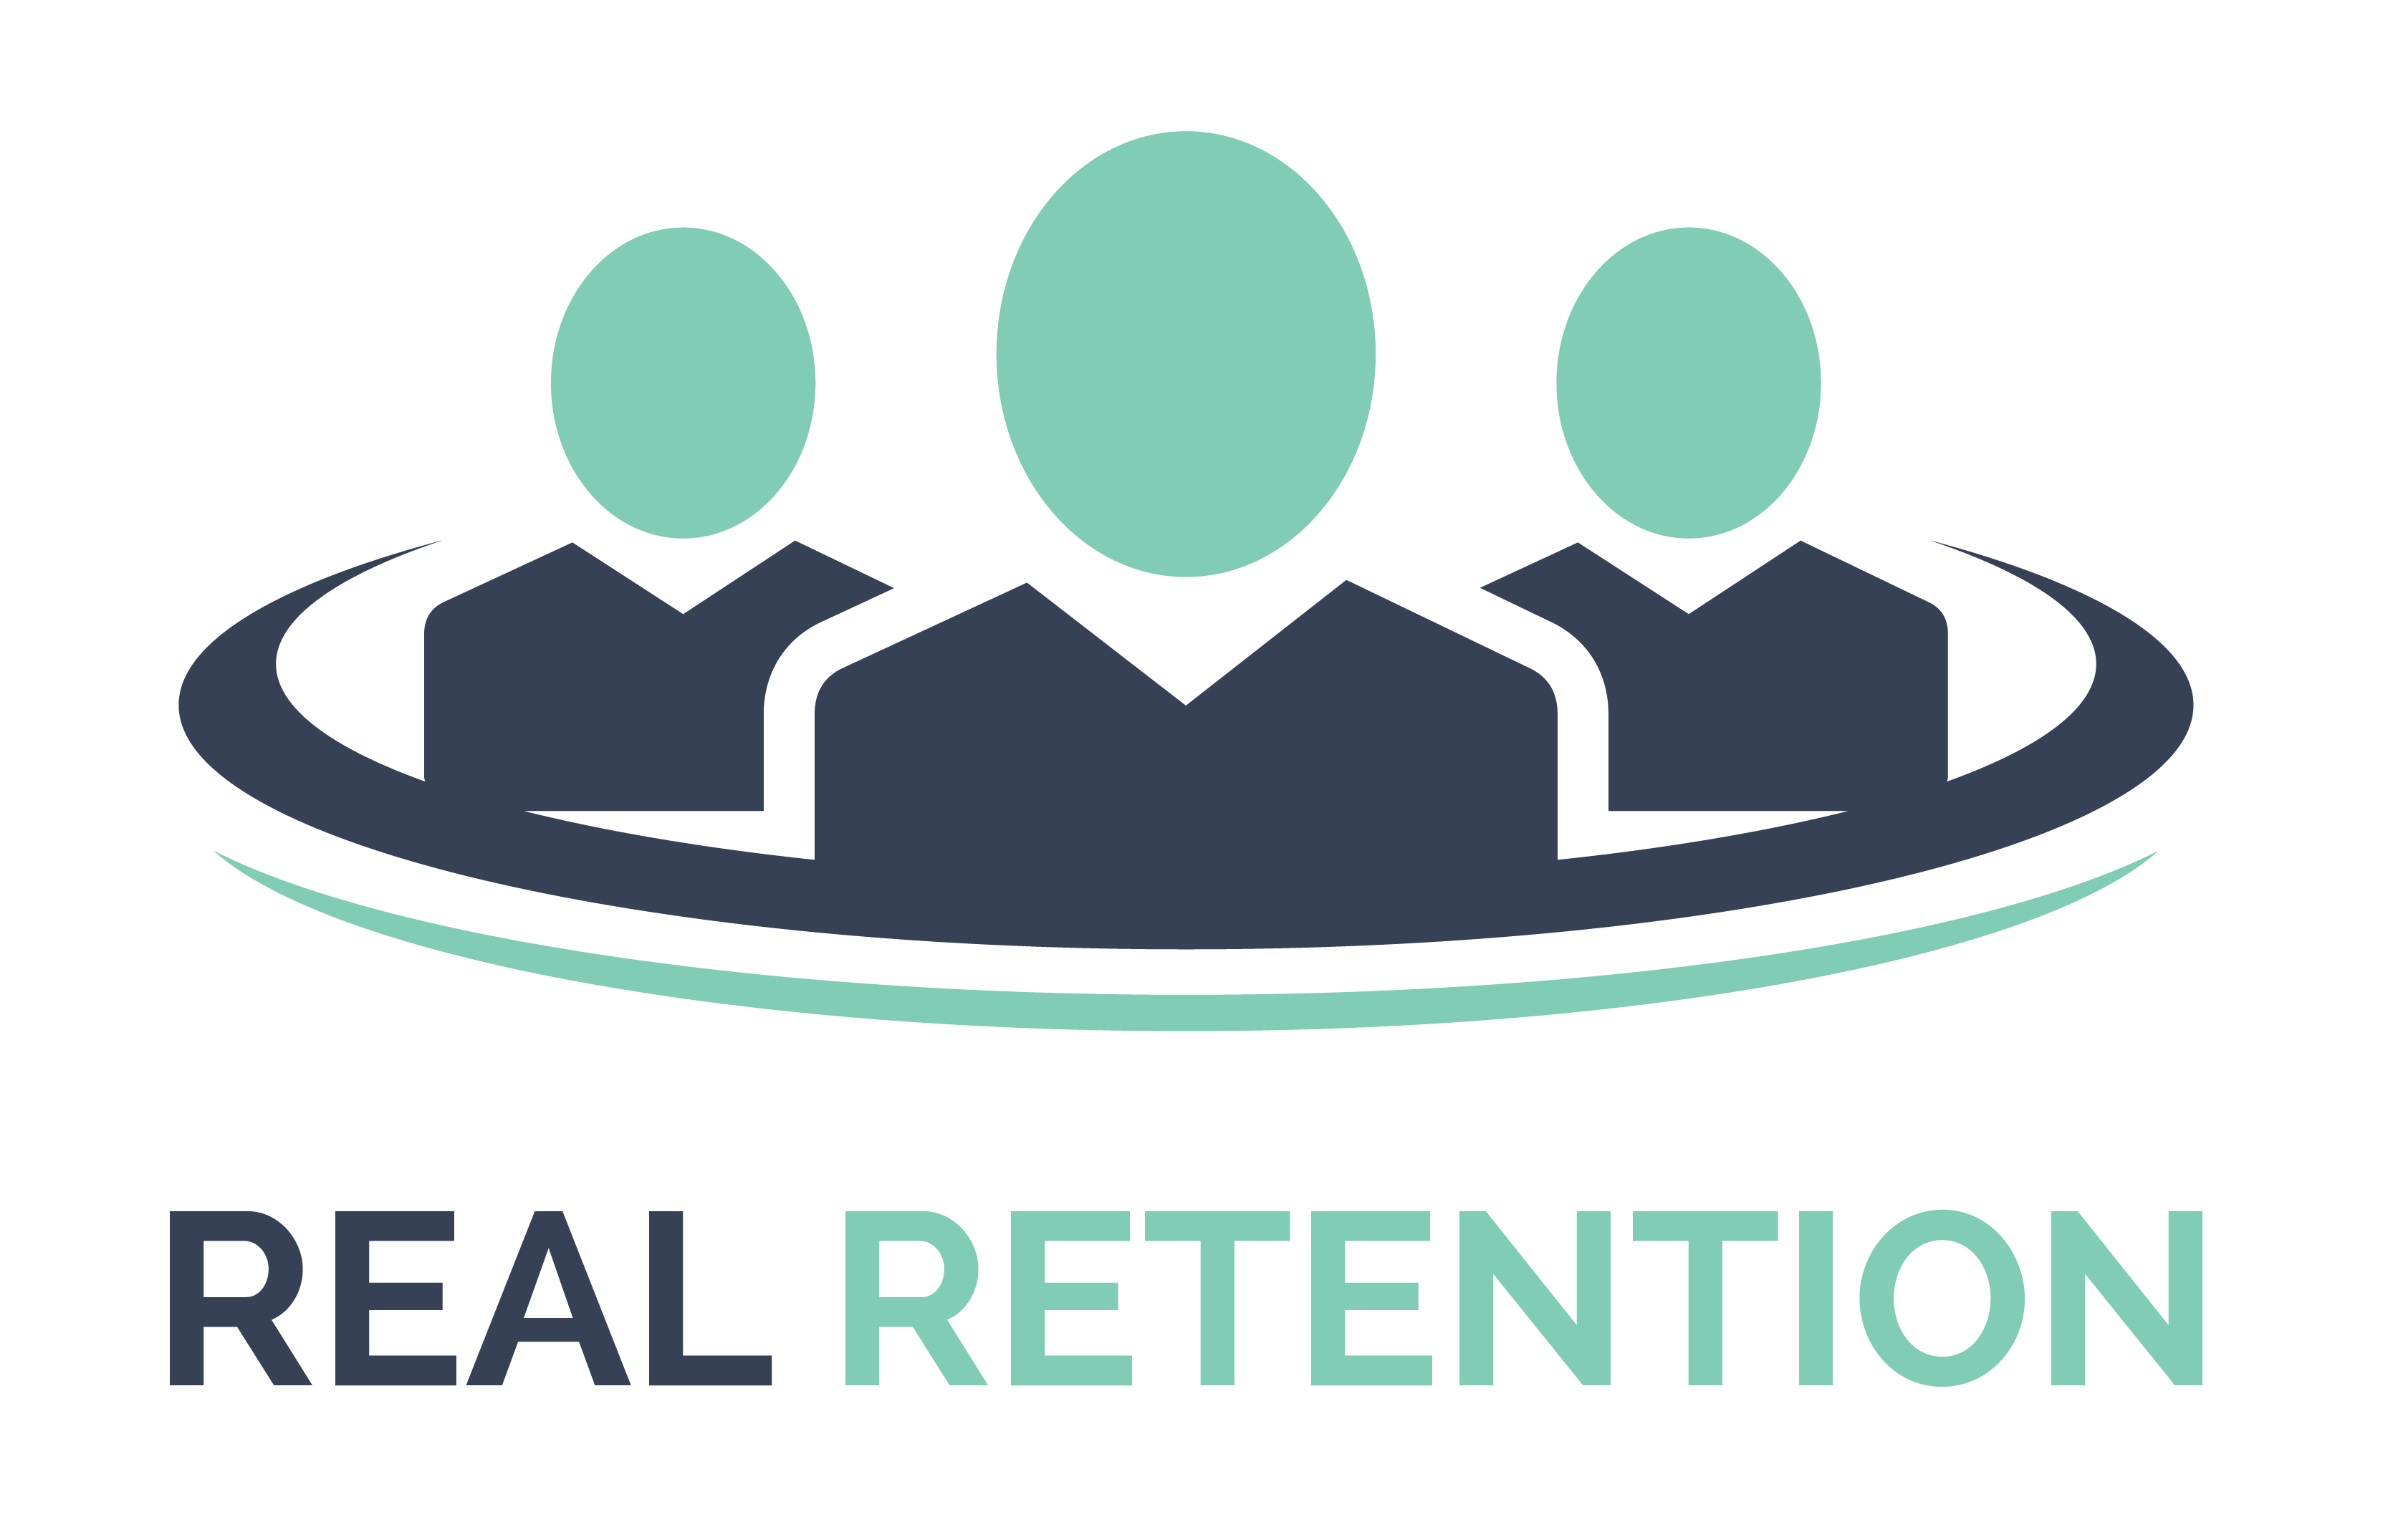 Real Retention